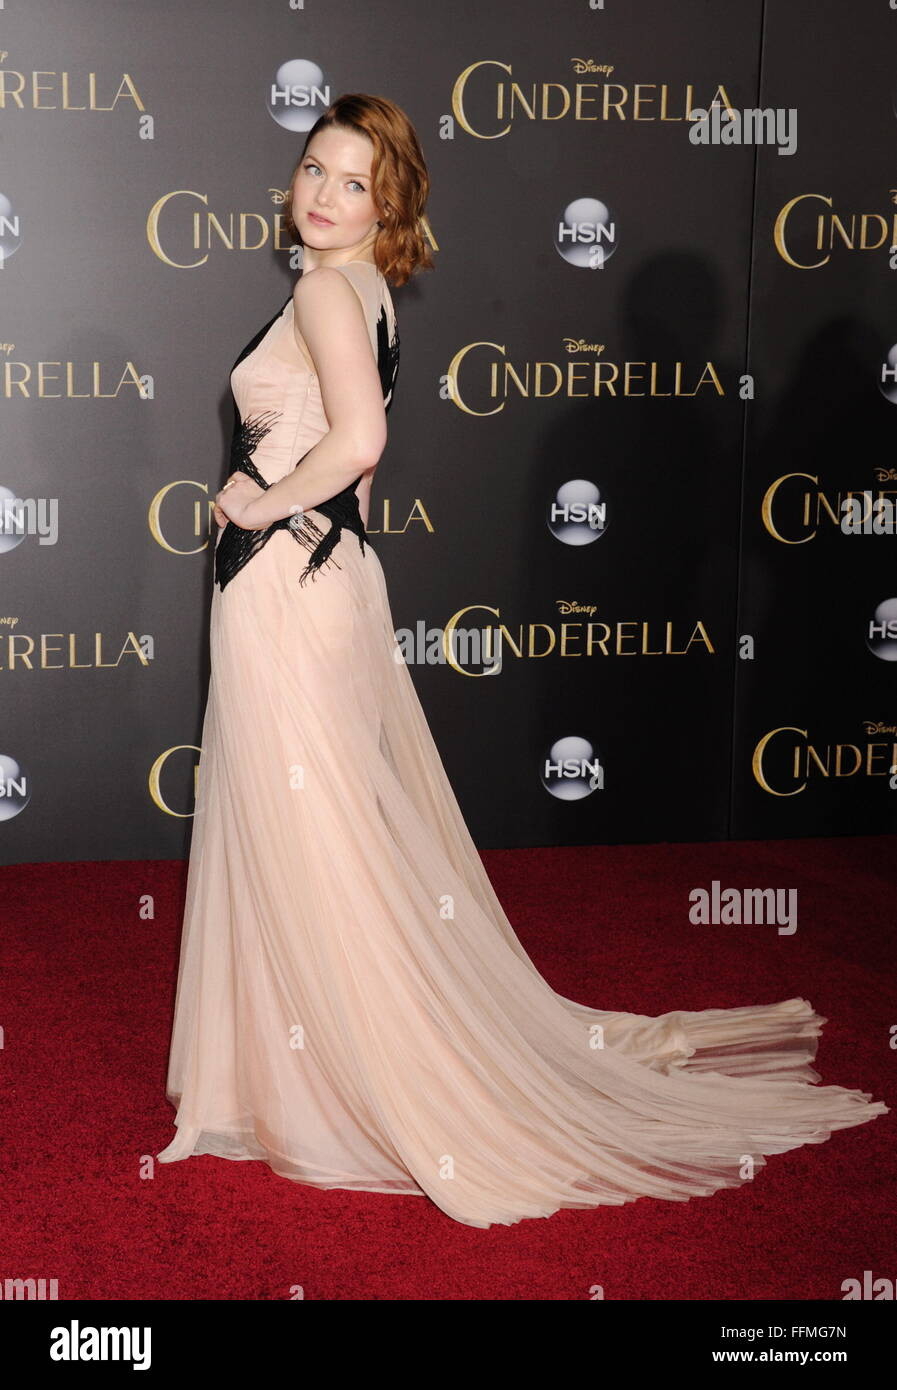 Actress Holliday Grainger arrives at the World Premiere of Disney's 'Cinderella' at the El Capitan Theatre - Stock Image